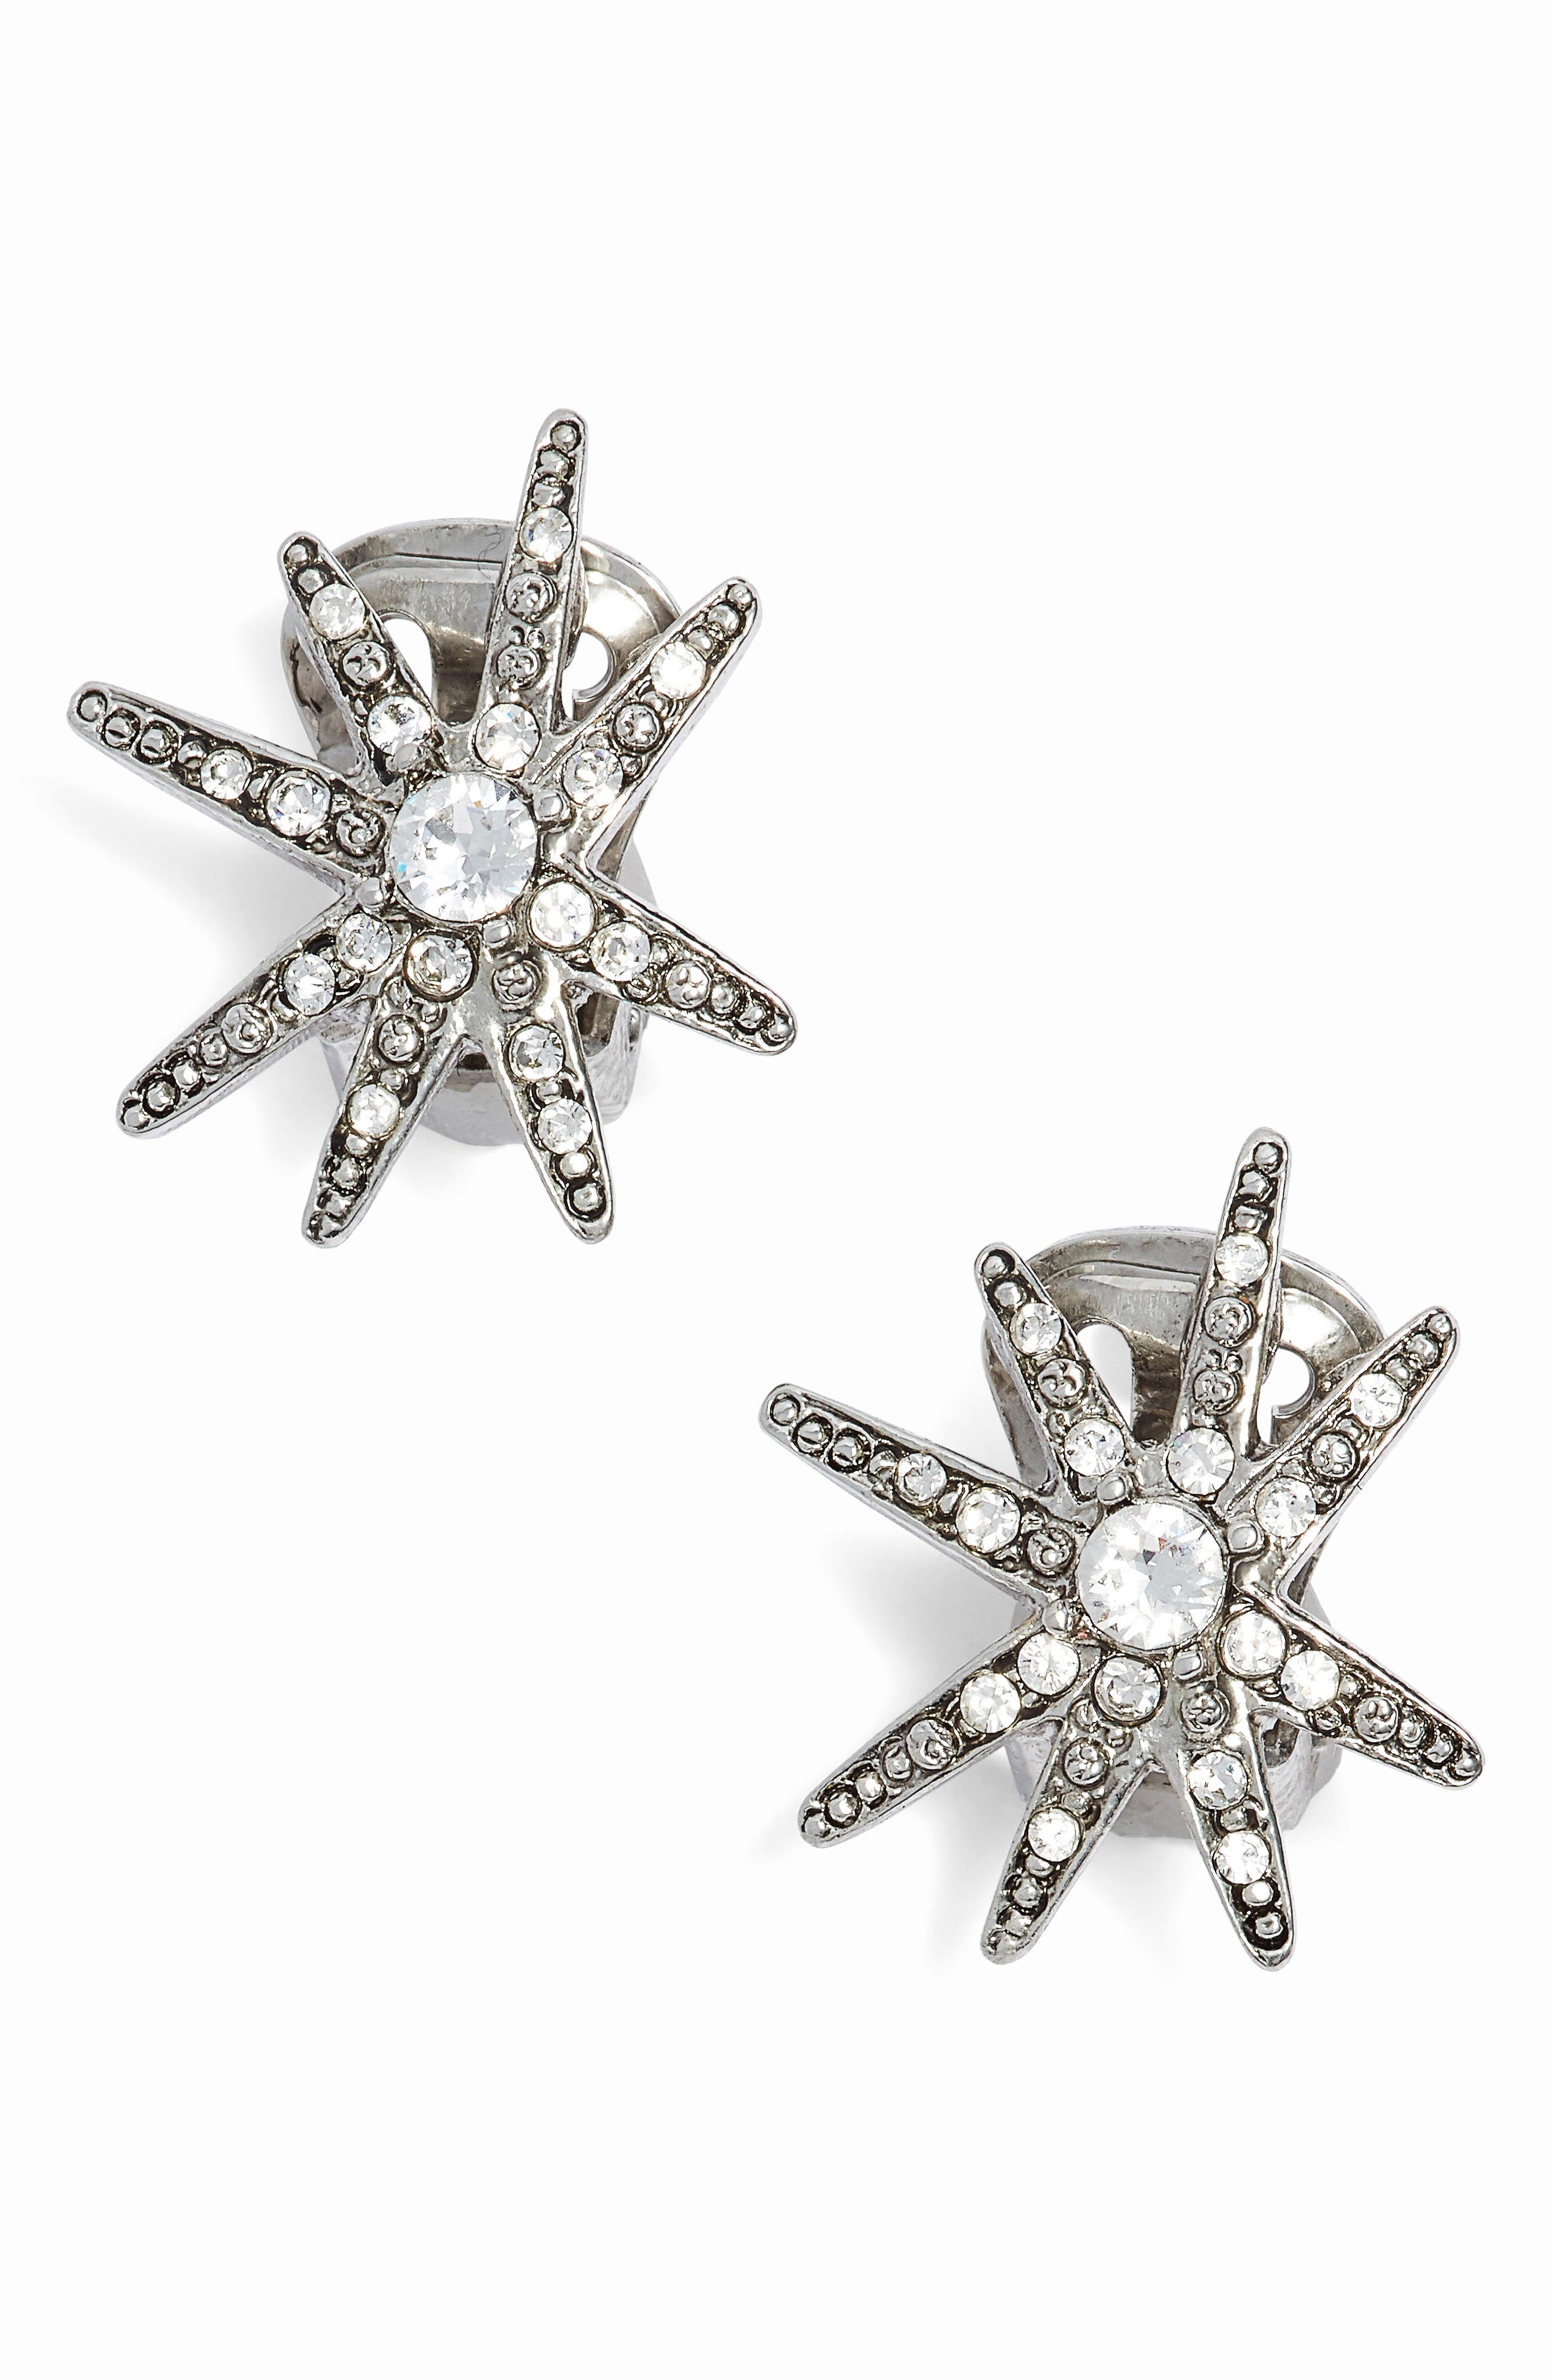 Crystal Fireworks Stud Earrings,                             Main thumbnail 1, color,                             040